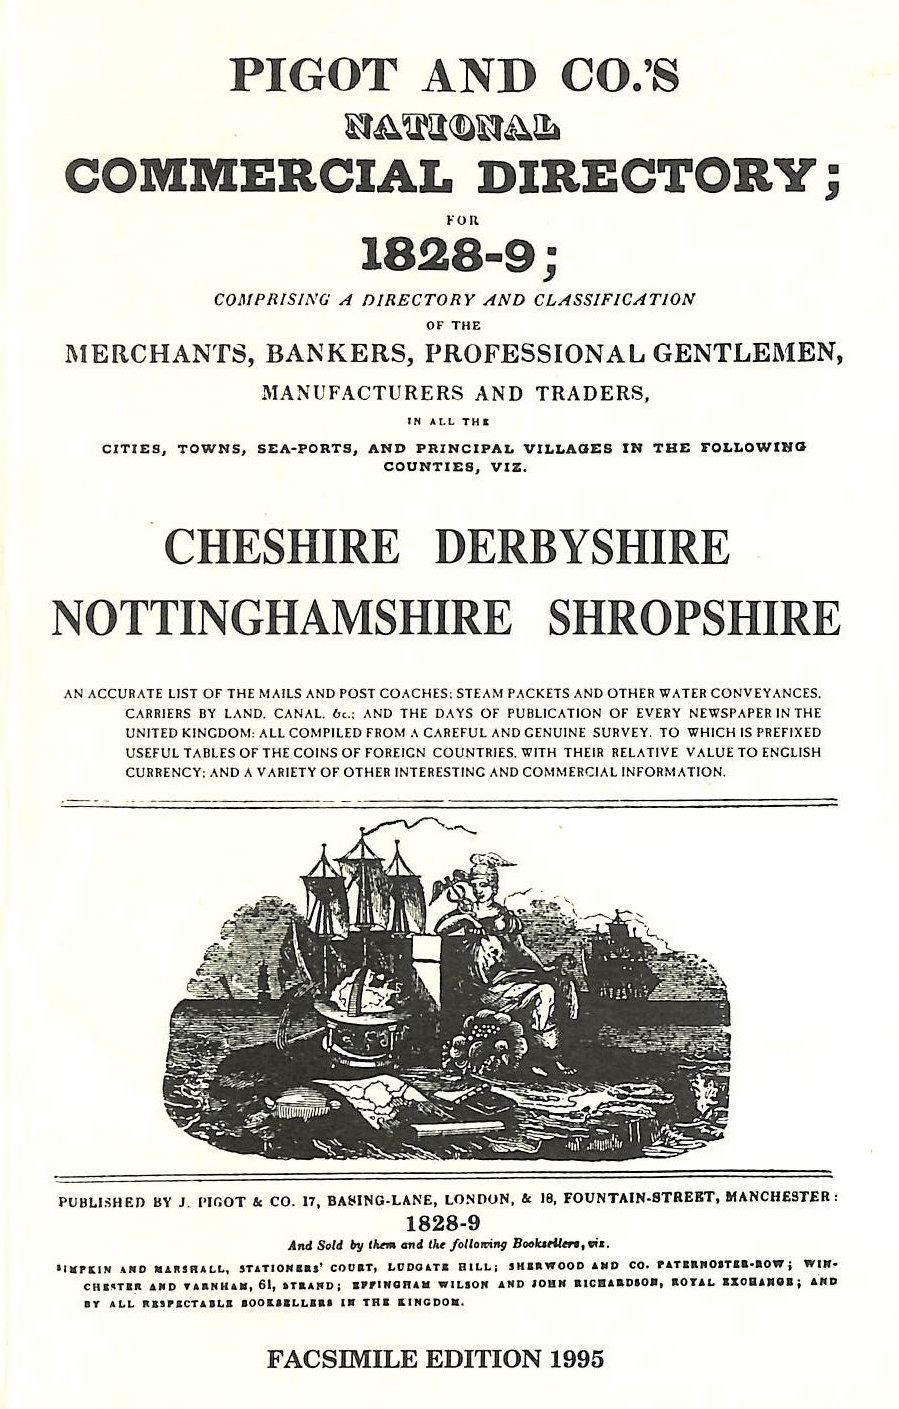 Image for National commercial directory for 1828-9: Cheshire, Derbyshire, Nottinghamshire, Shropshire